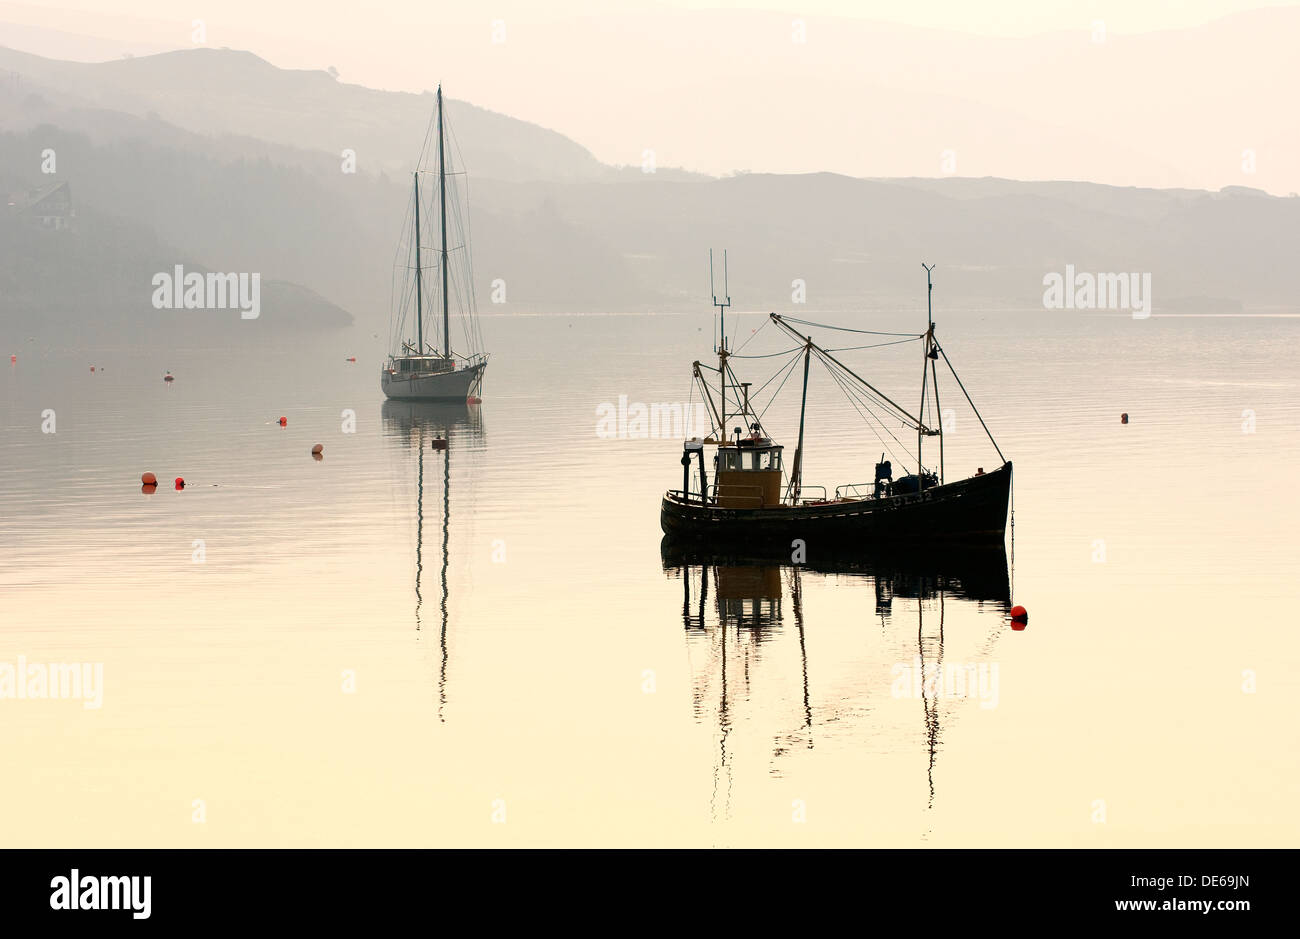 Yacht and inshore fishing boat at anchor on Loch Broom at Ullapool, Highland Region, northwest Scotland, UK. Dawn haze - Stock Image